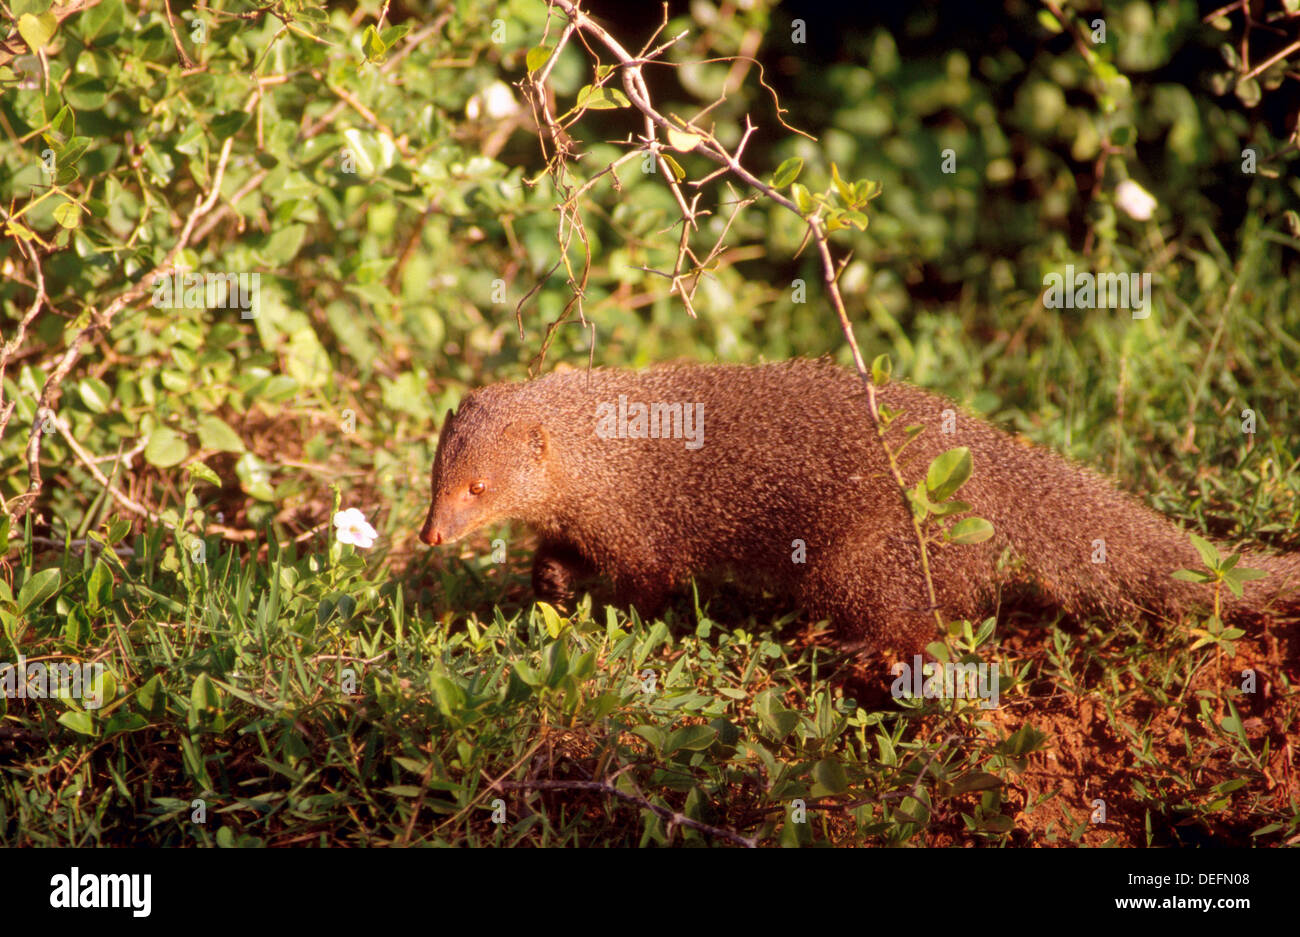 Ceylon brown mongoose (Herpestes fuscus rubidor). Yala West National Park (Ruhuna). Sri Lanka - Stock Image